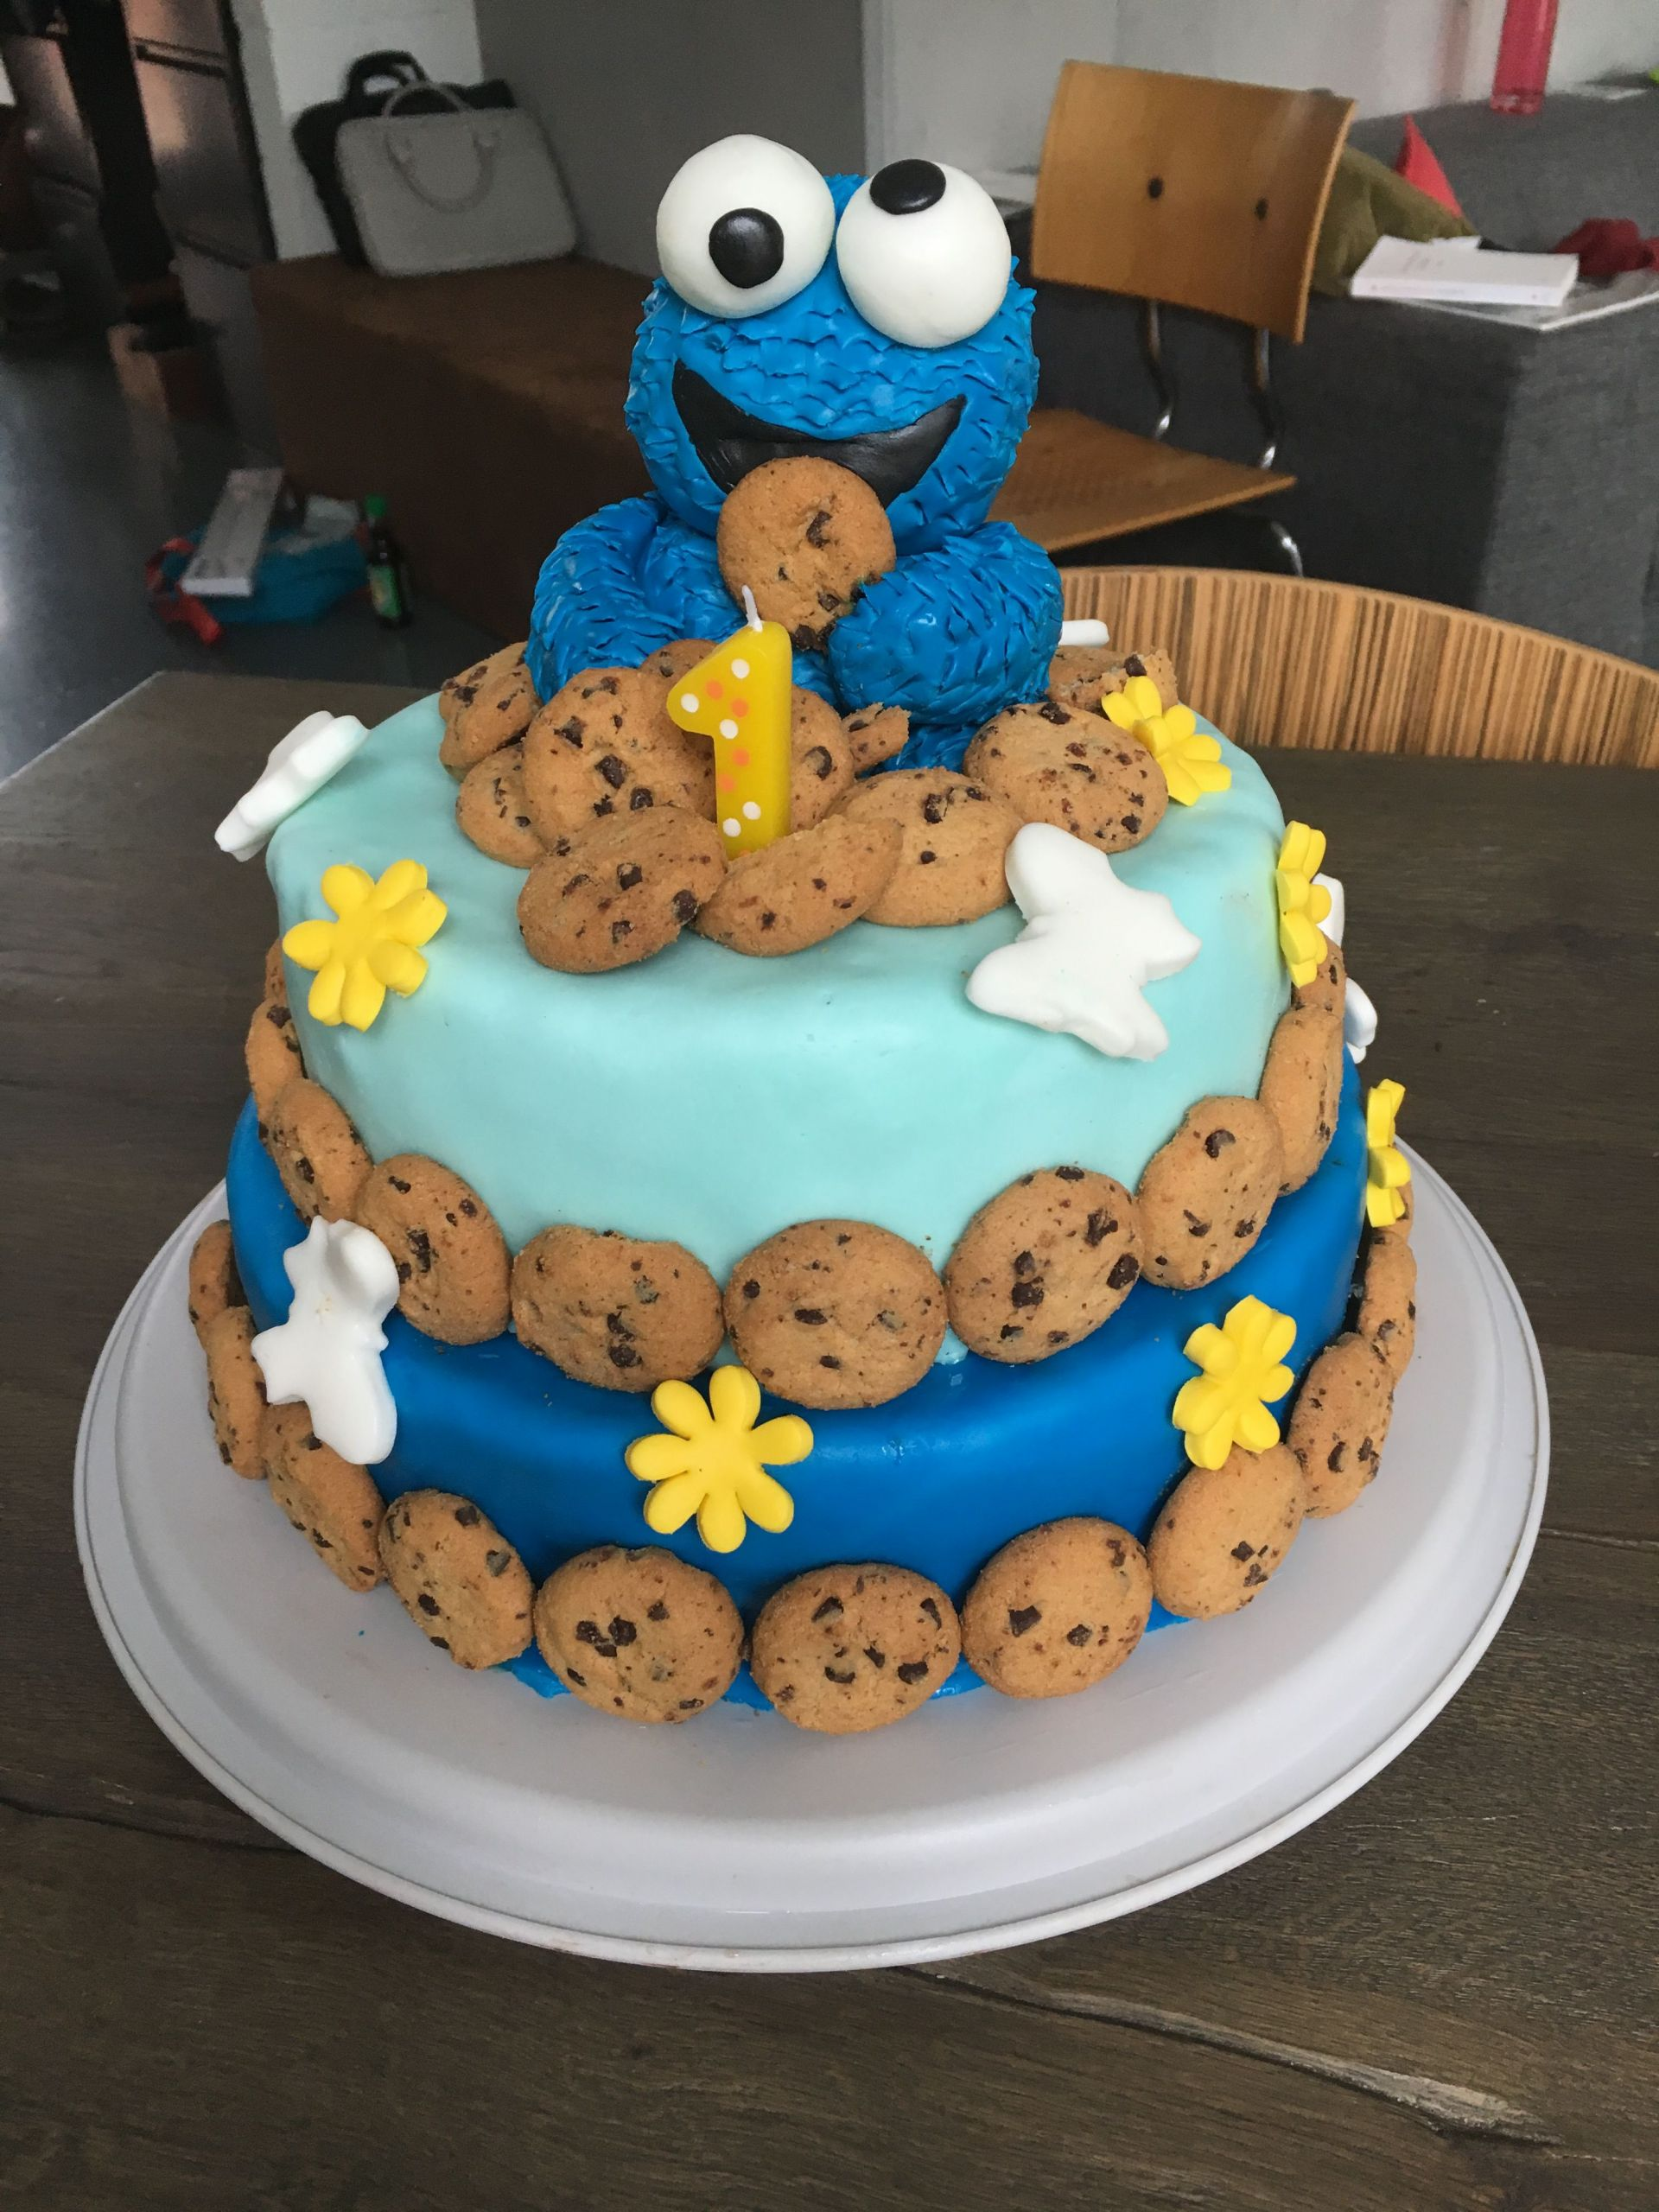 Birthday Cake For 1 Year Old  Cookie Monster birthday cake for my 1 year old baby boy